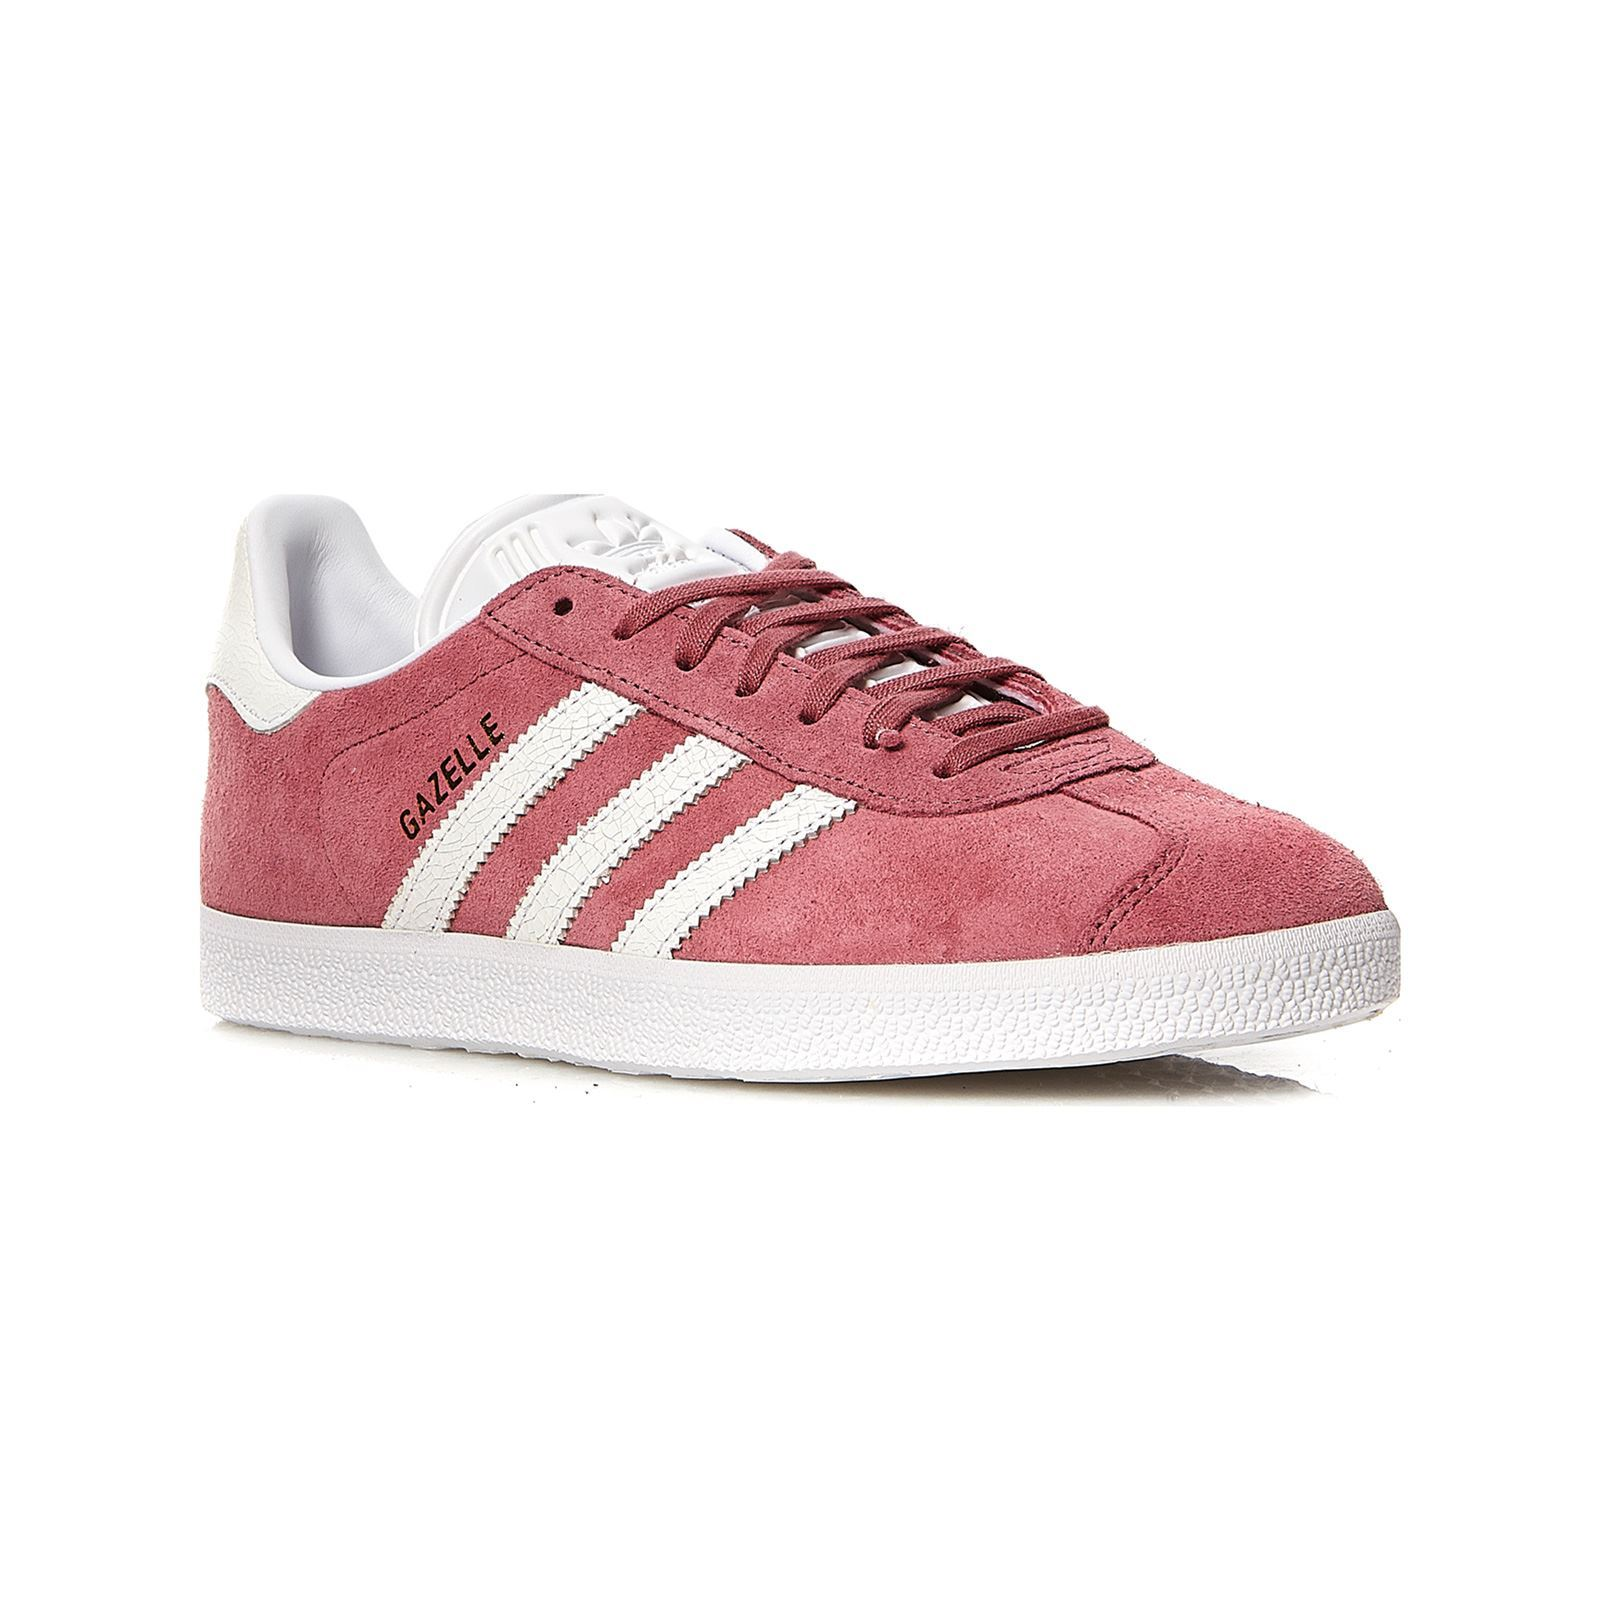 ADIDAS ORIGINALS Gazelle W - Baskets en cuir - rose